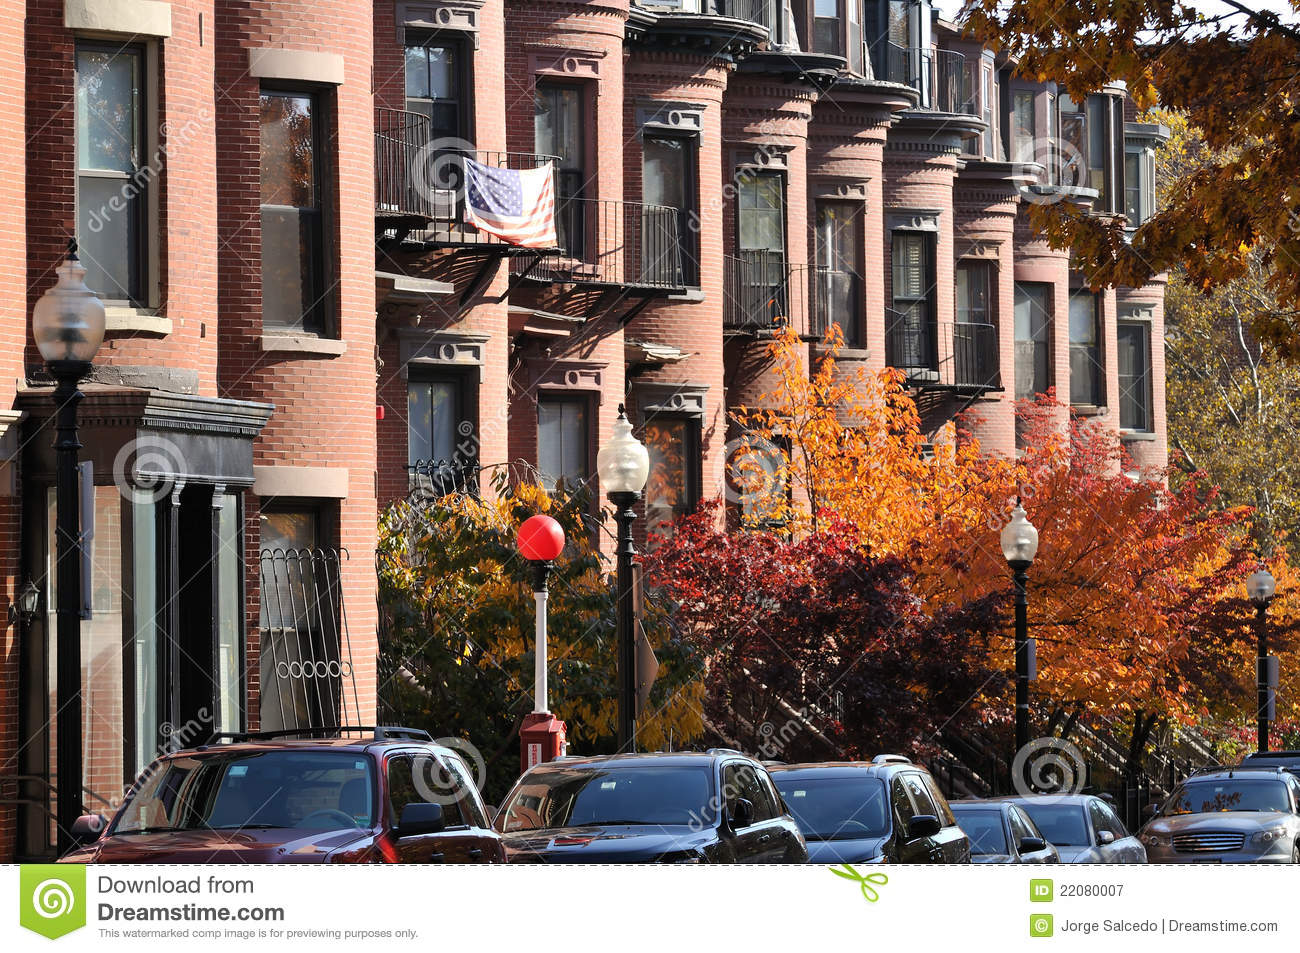 Nice Download Boston South End Apartments Stock Image   Image Of Autumn,  Residential: 22080007